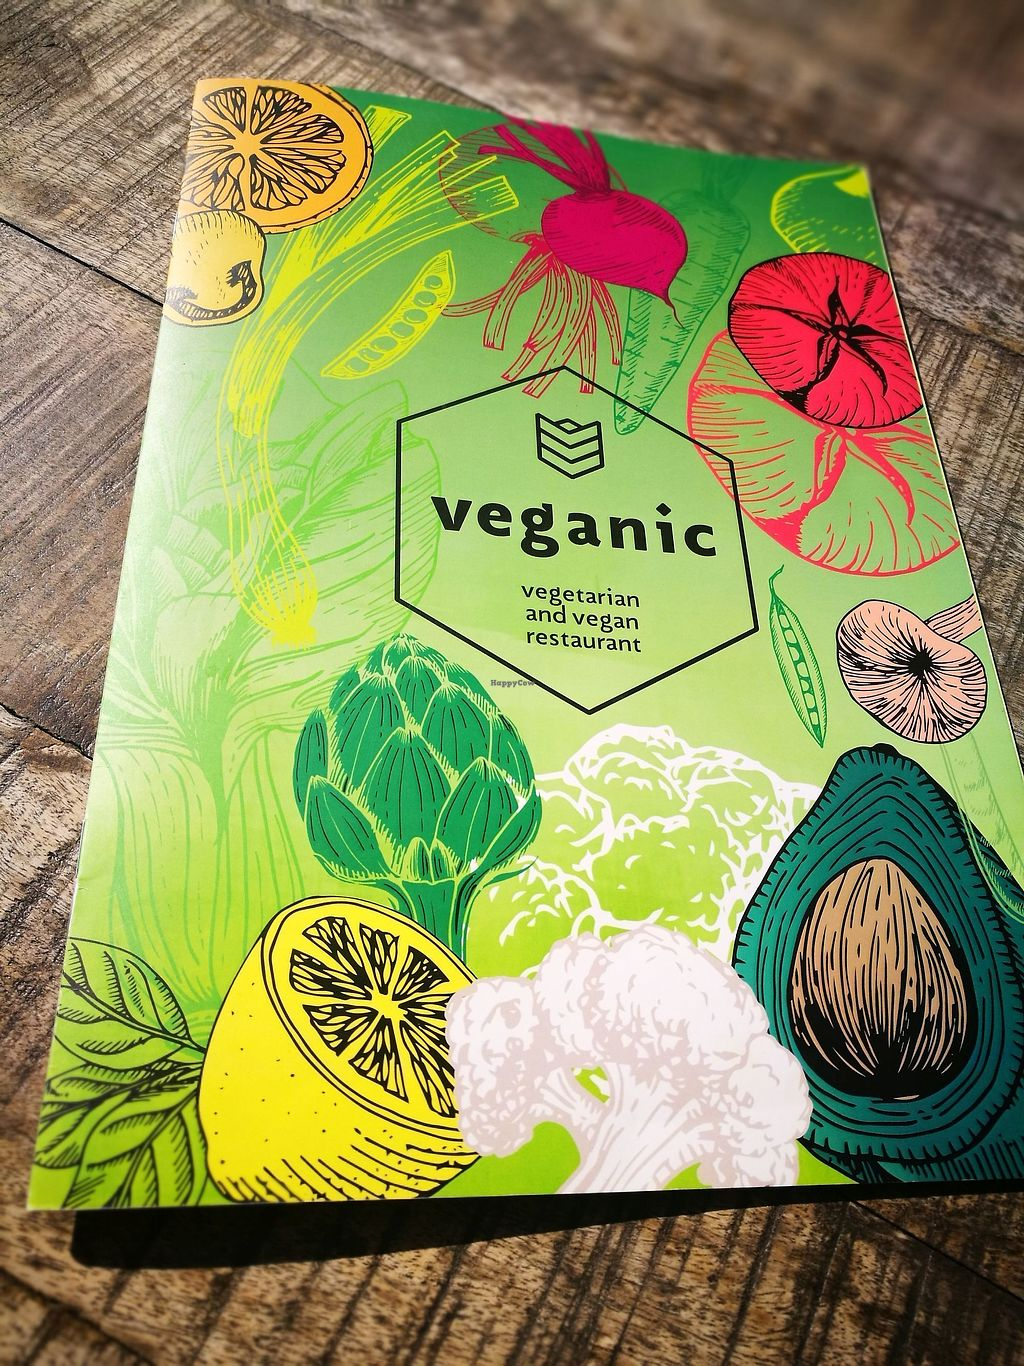 """Photo of Veganic  by <a href=""""/members/profile/k-girl80"""">k-girl80</a> <br/>menu cover <br/> October 12, 2017  - <a href='/contact/abuse/image/76428/314543'>Report</a>"""